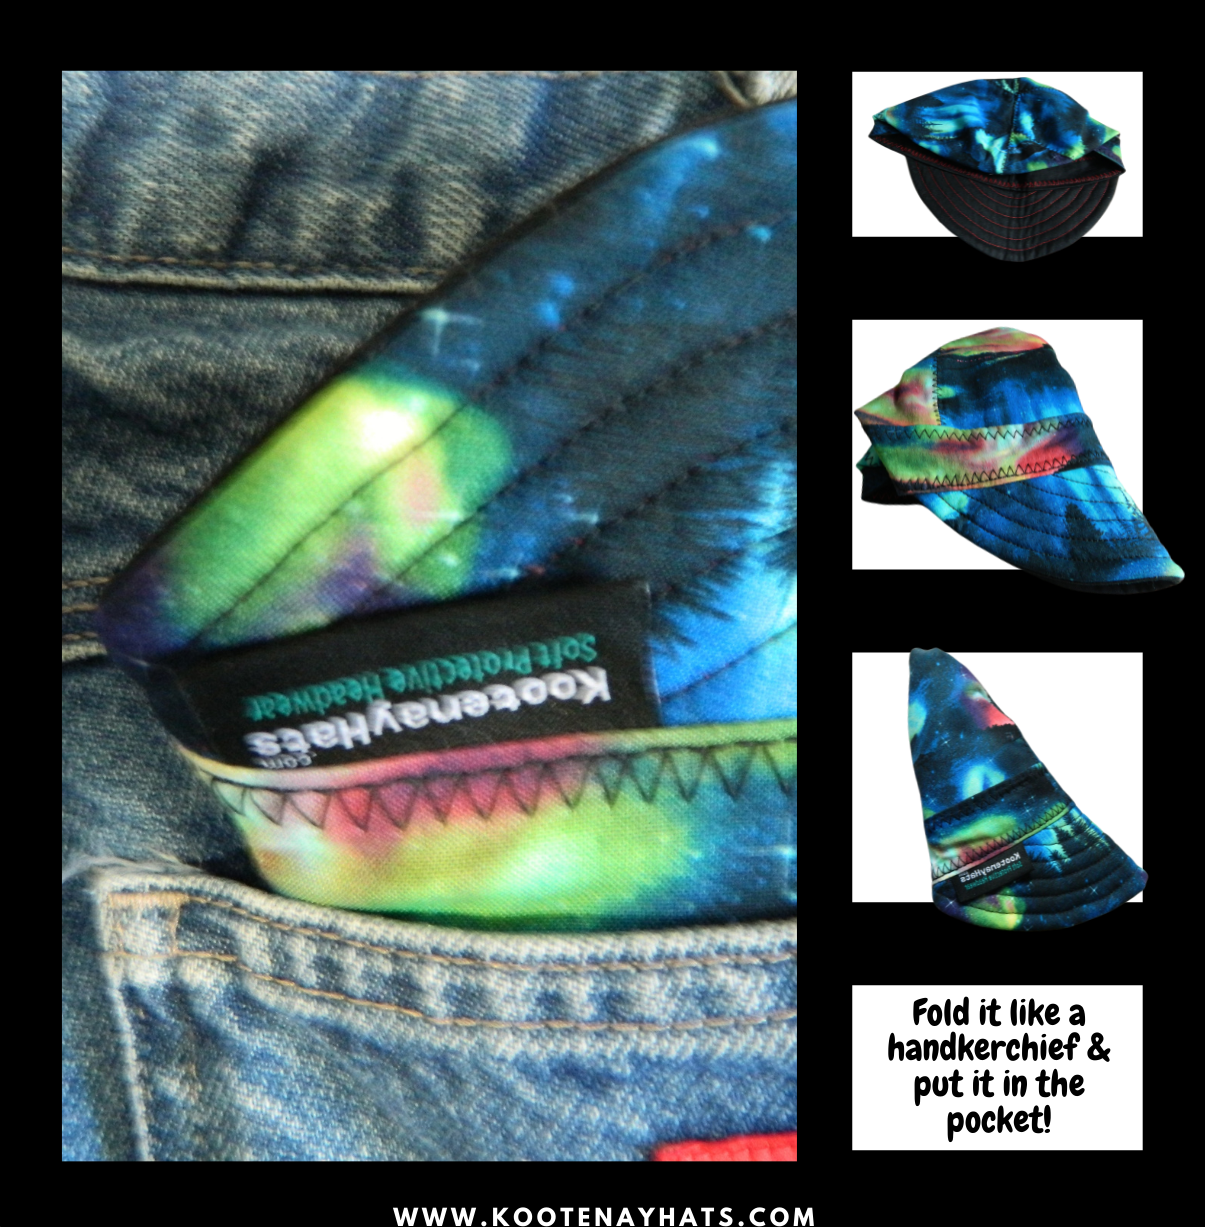 Treat it like your buddy! Fold the welding hat like a hankerchief and put it in your pocket. And never leave home without it! www.KootenayHats.com